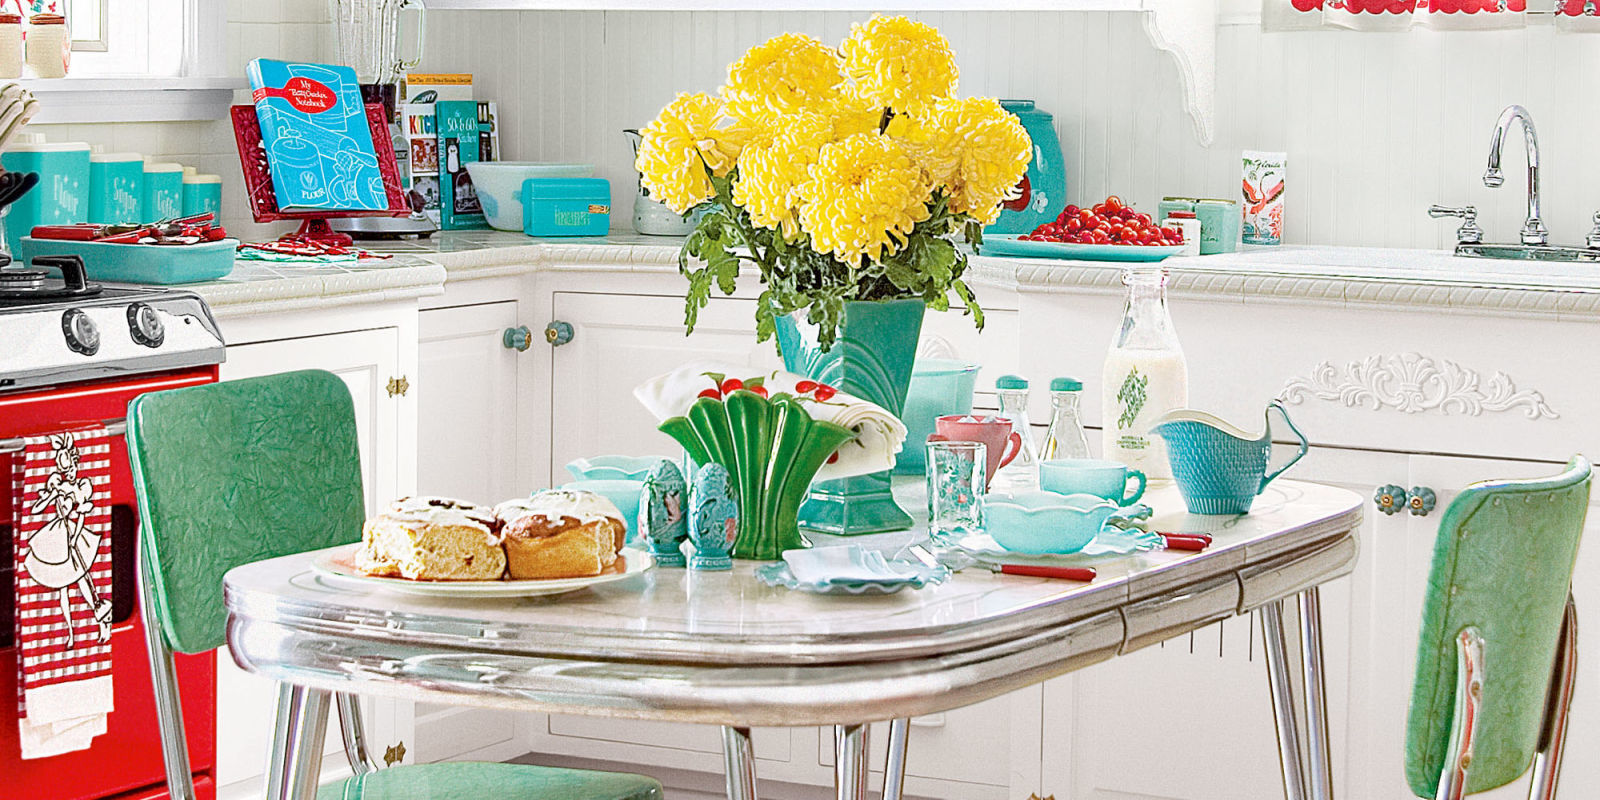 11 Retro Diner Decor Ideas For Your Kitchen